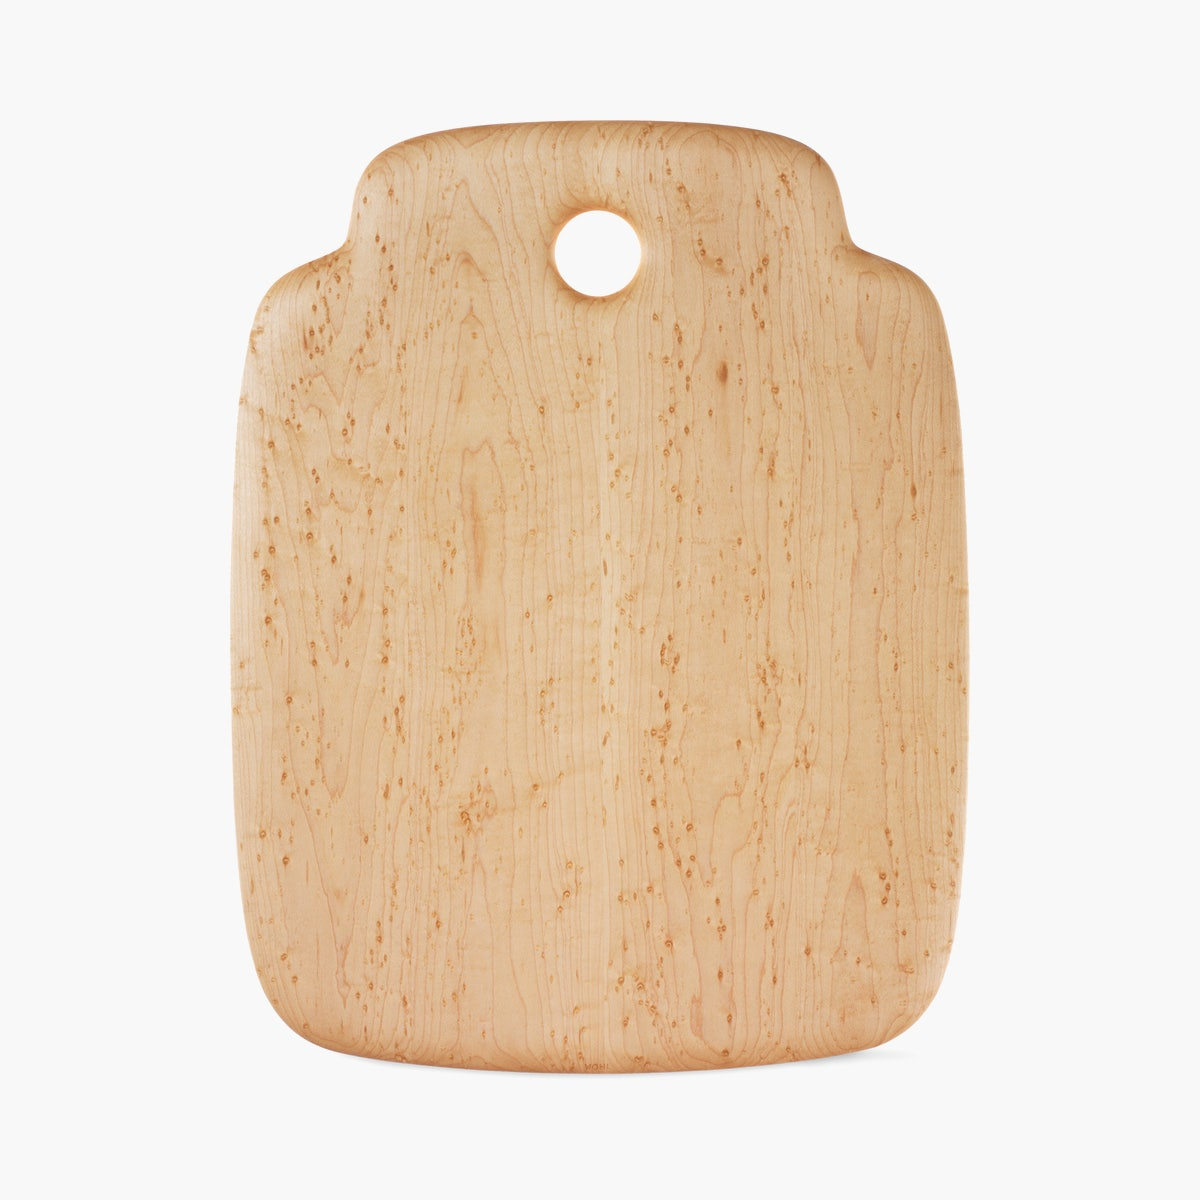 Edward Wohl Cutting Boards, Stepped Rectangle